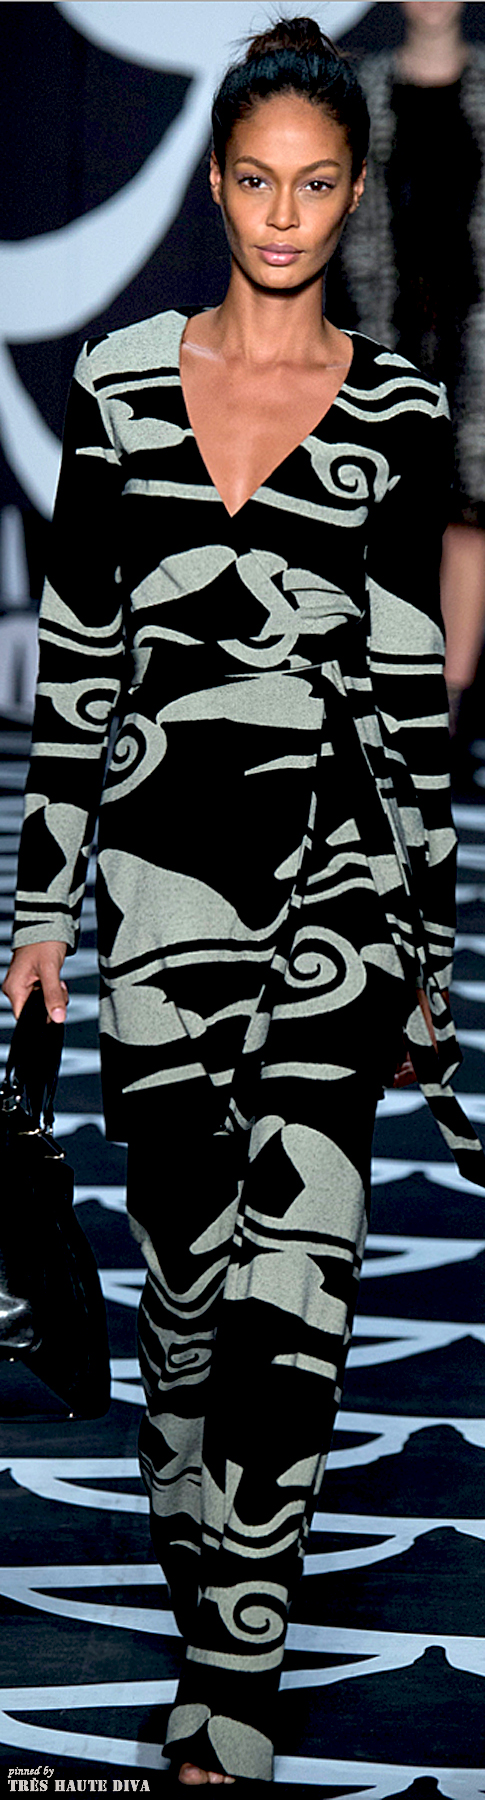 #NYFW Diane von Furstenberg Fall 2014 RTW  http://www.vogue.com/fashion-week